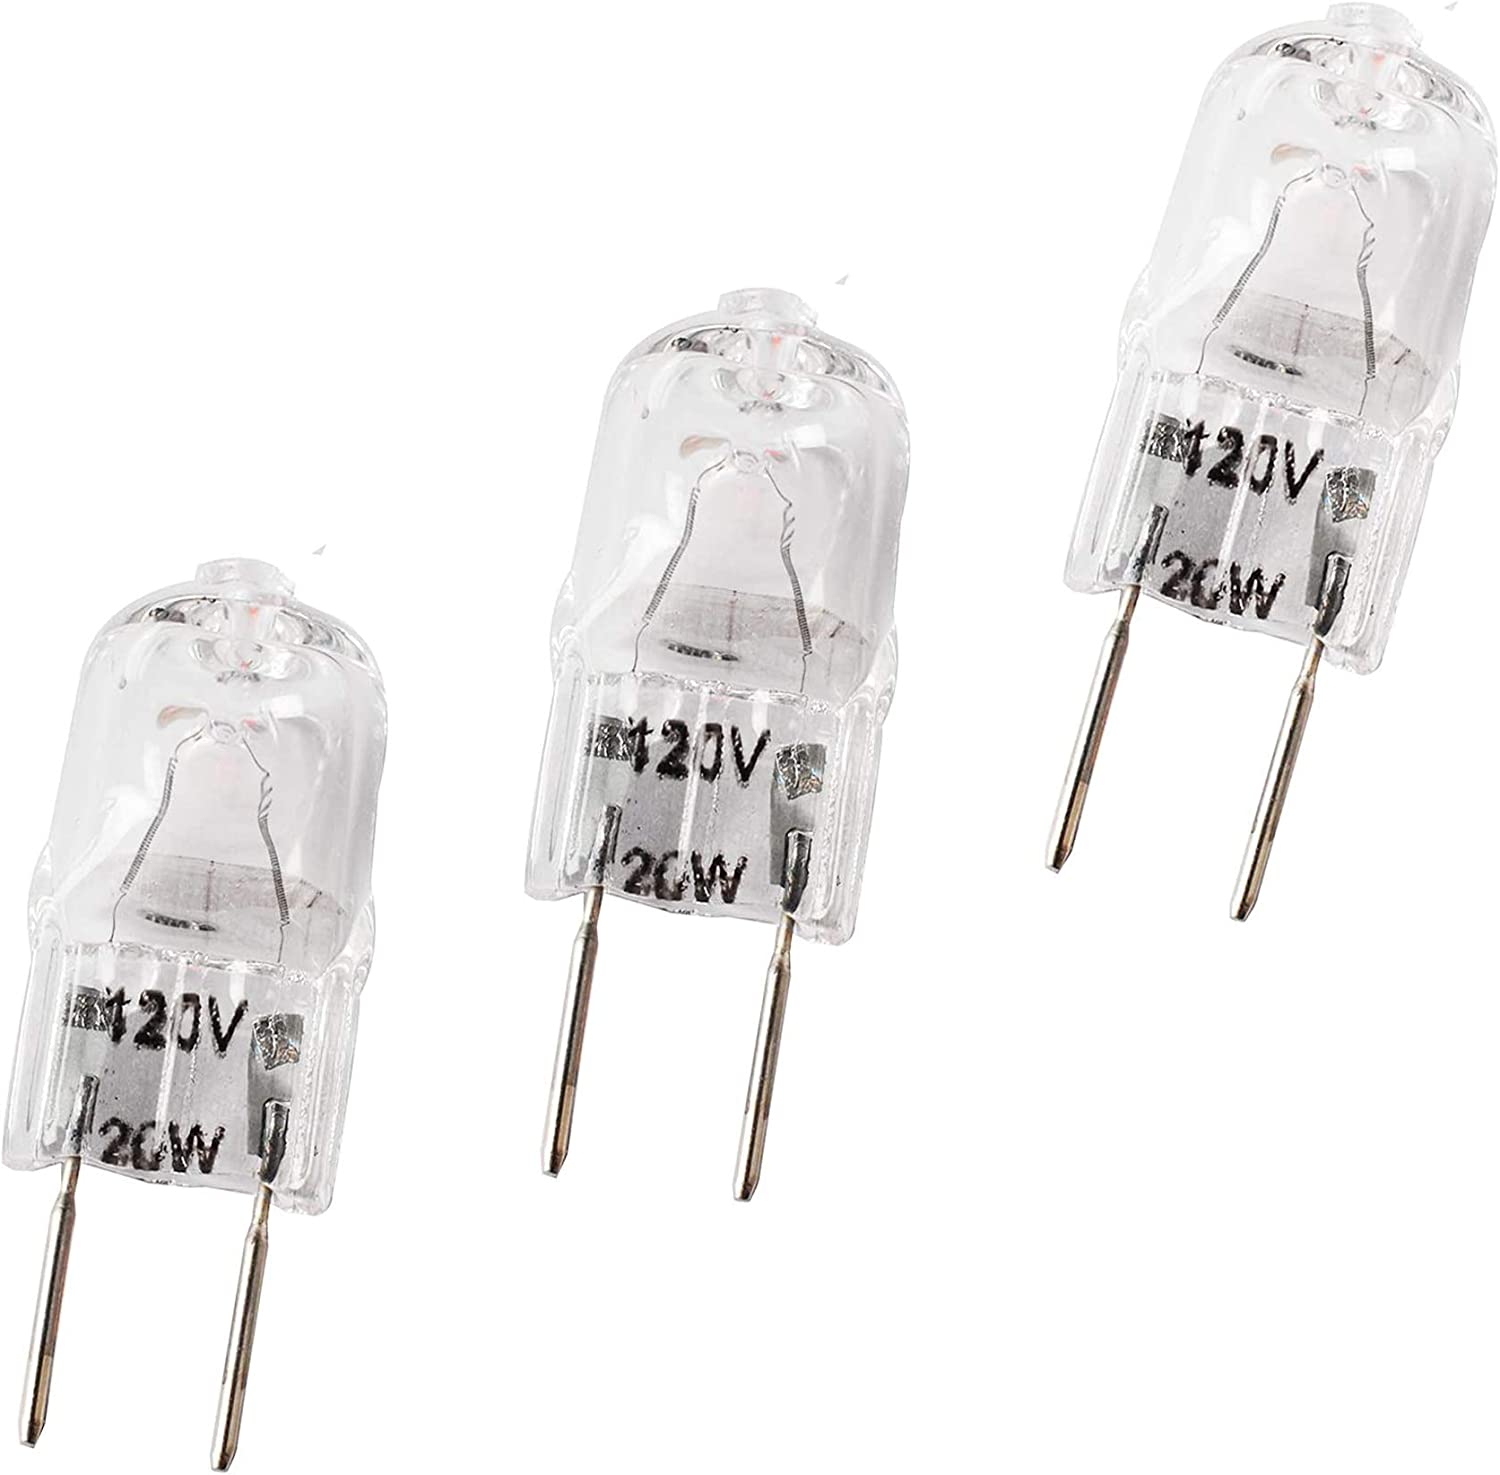 Wadoy WB36X10213 Microwave Light Bulbs, 3 Pack Replacement for Halogen GE Oven Parts G8 120V 20W WB25X10019 WB08X10050 WB36X10246